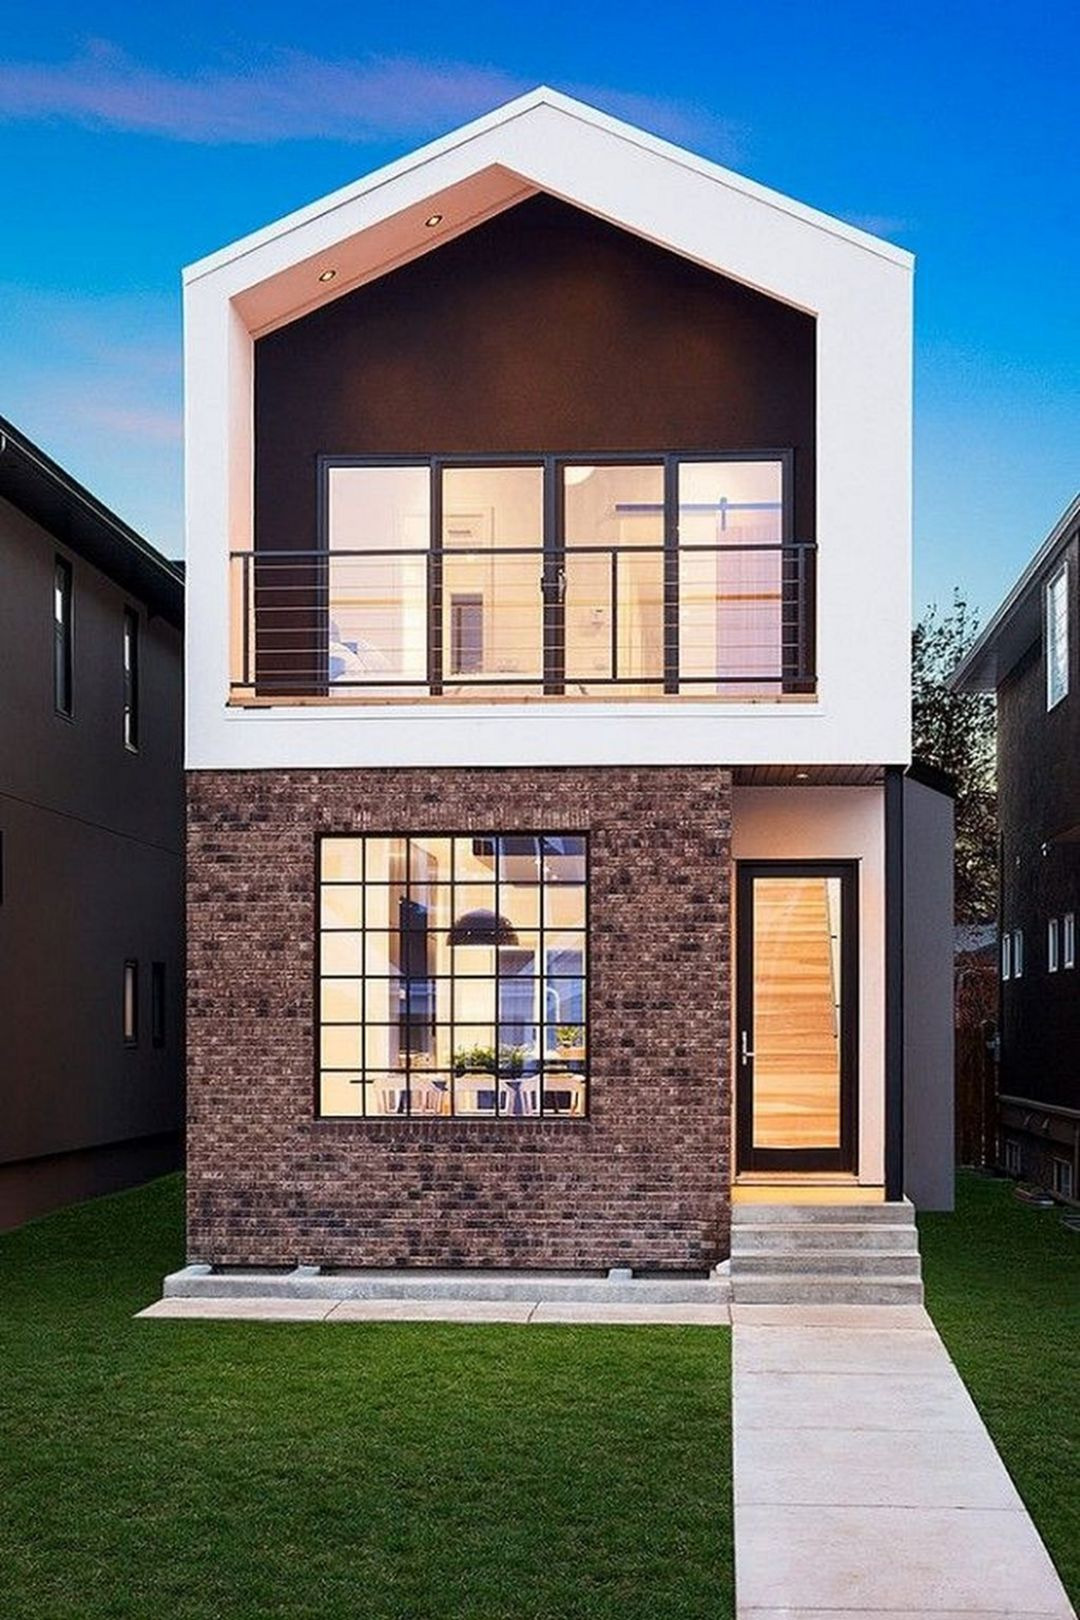 House and Design Pictures New 15 Simple Minimalist House Design Trends 2019 Rubric Core